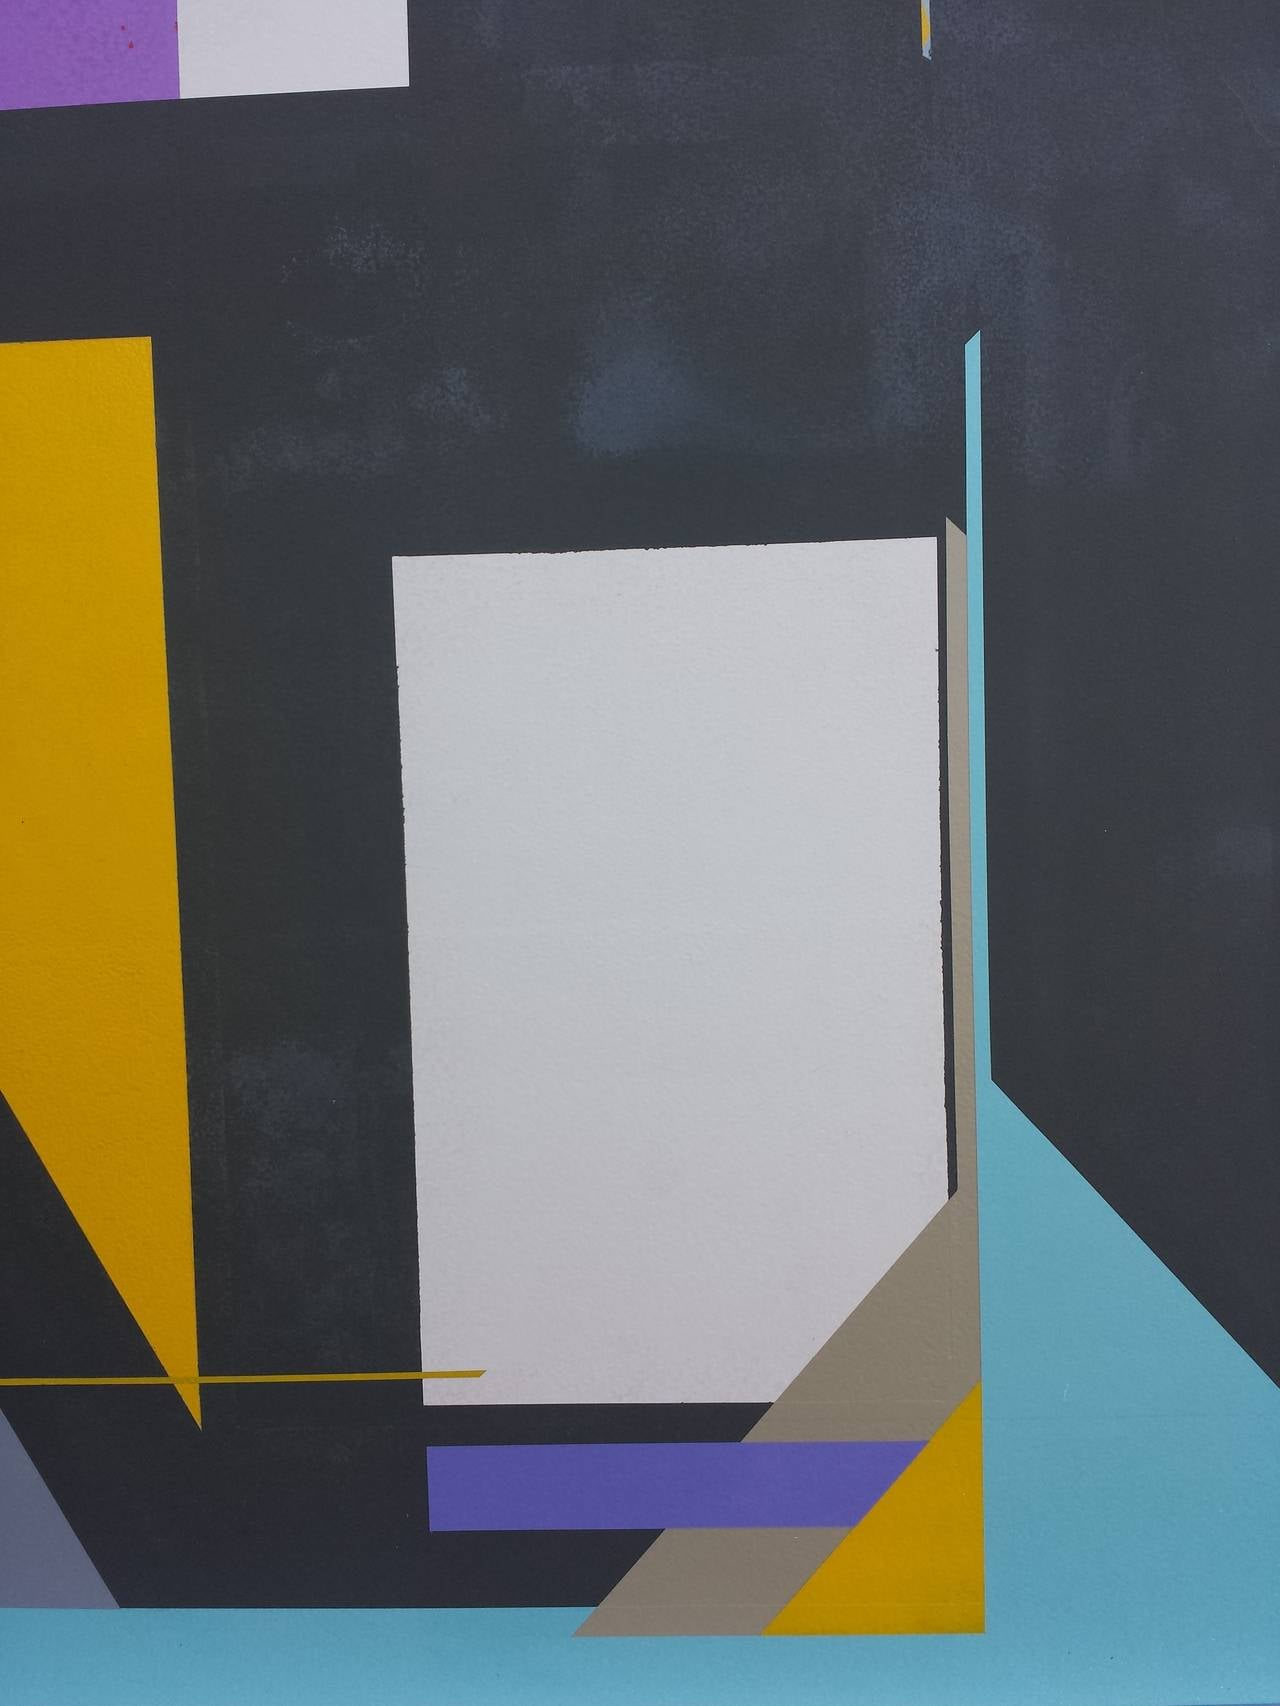 Acrylic on Panel Titled: Contradiction 5